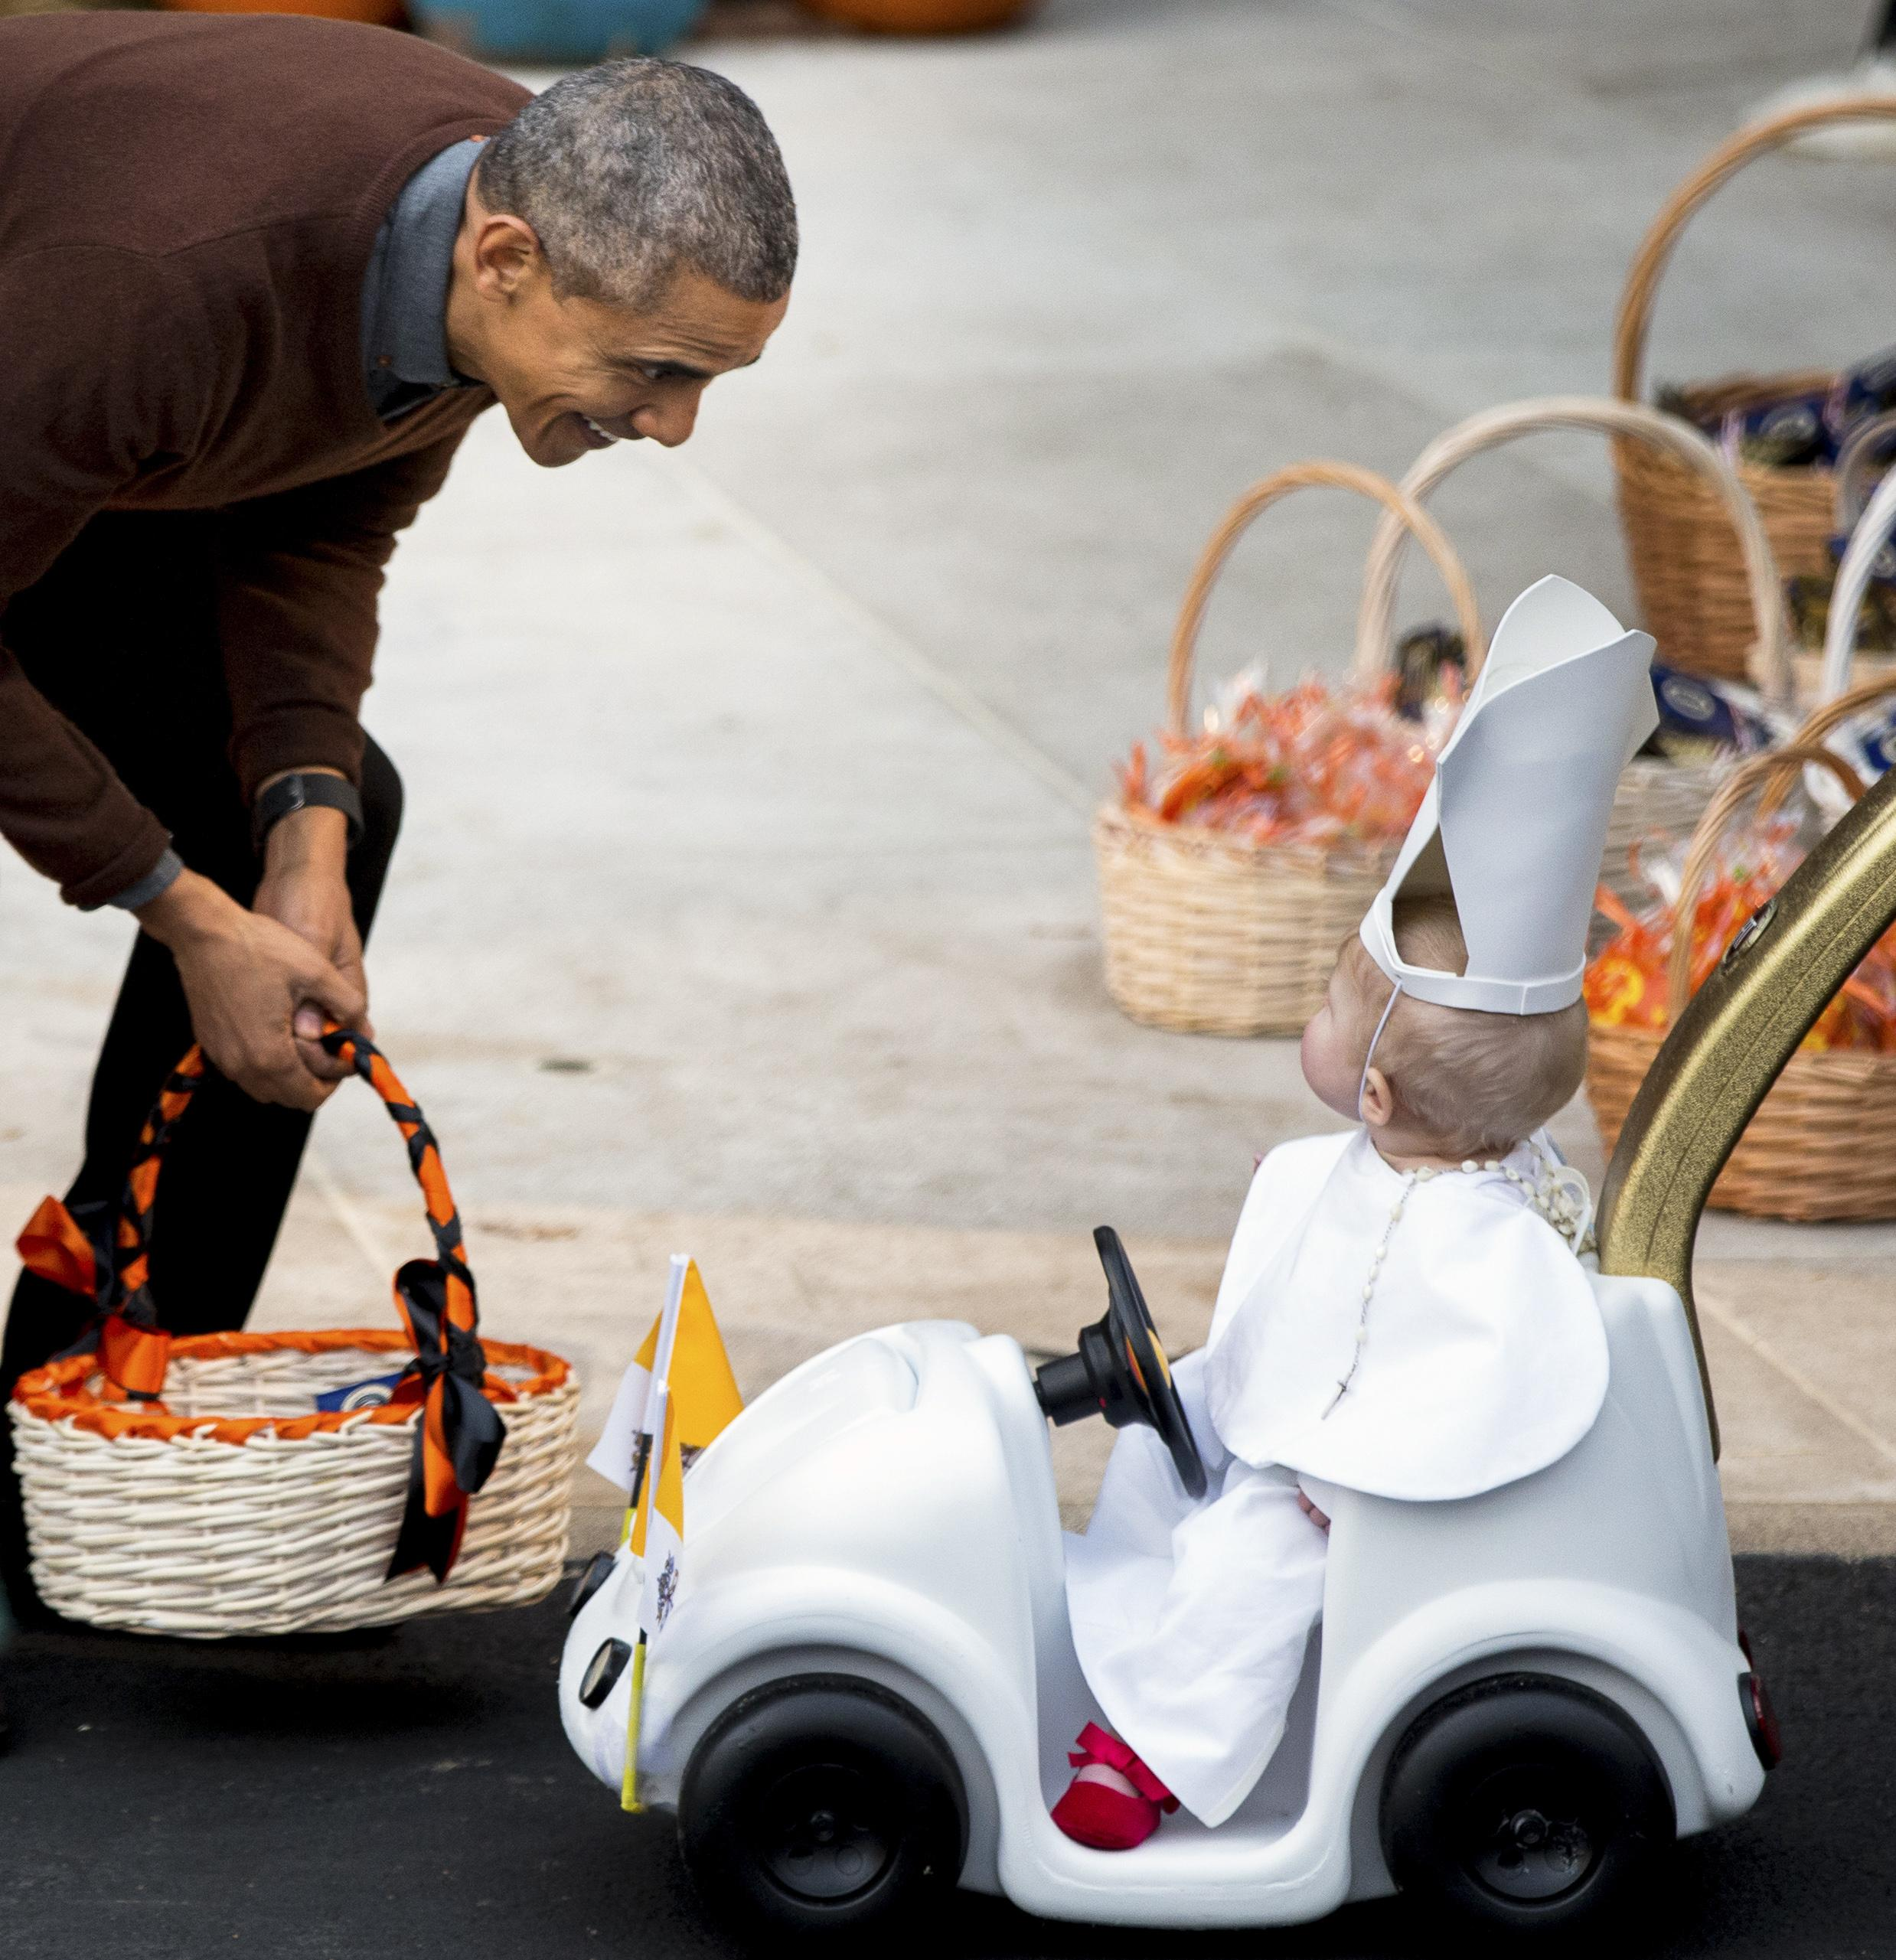 obama gives lil' pope 'top prize' for halloween costume - washington